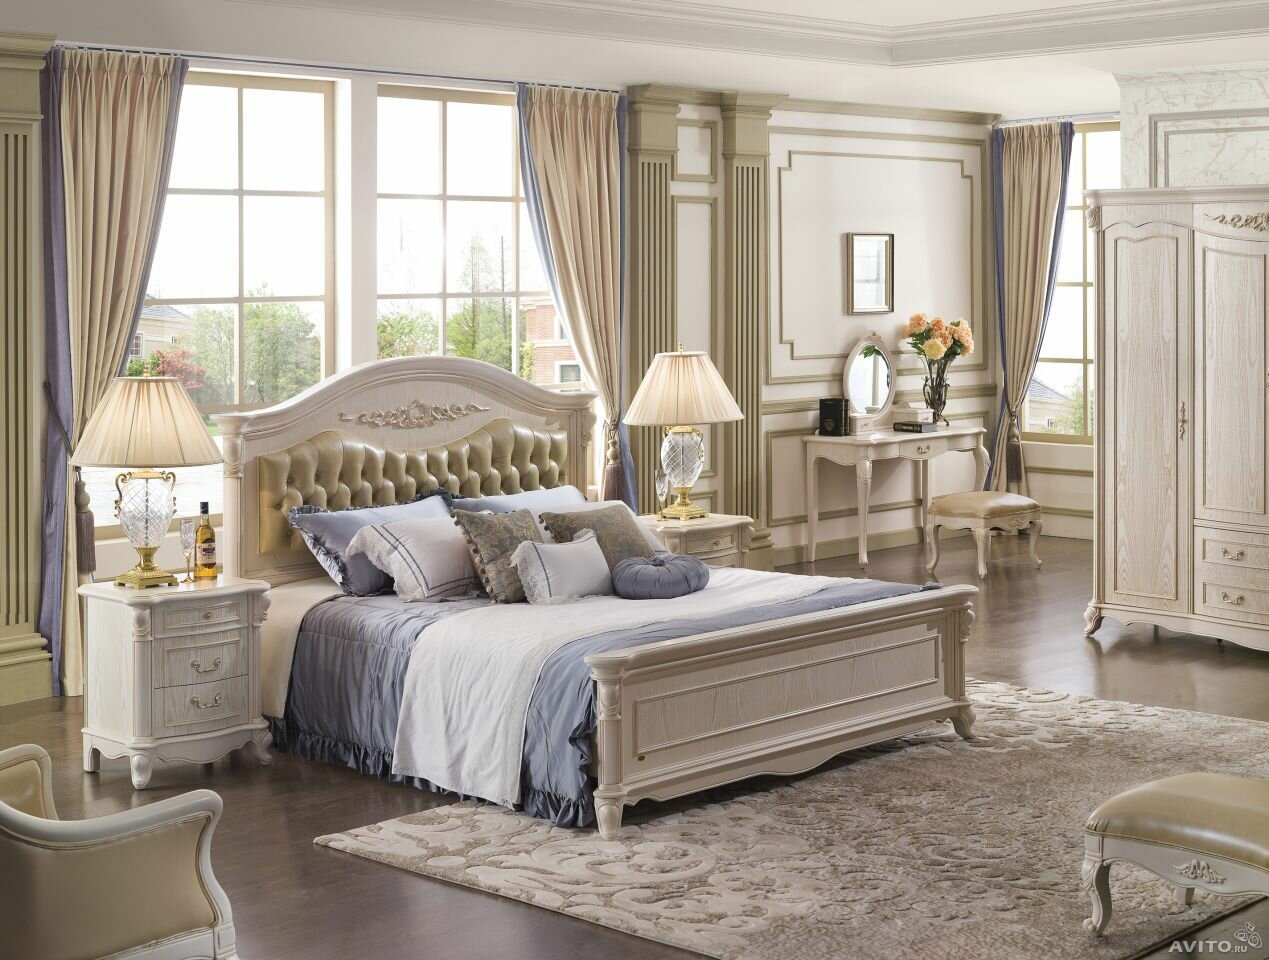 15 World s Most Beautiful Bedrooms